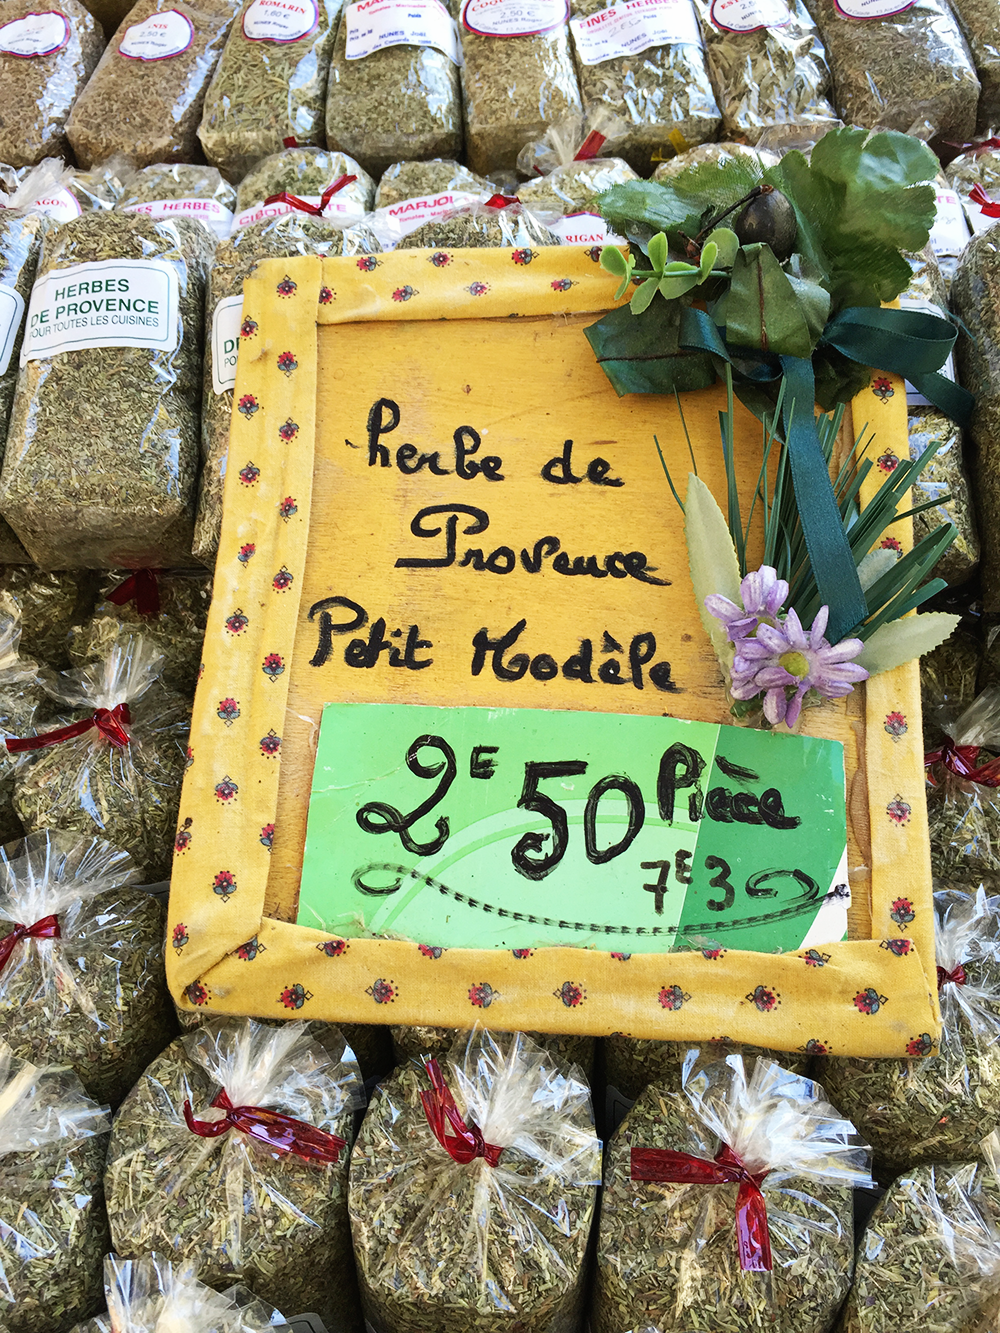 Herbs de Provence at a Farmers Market in France